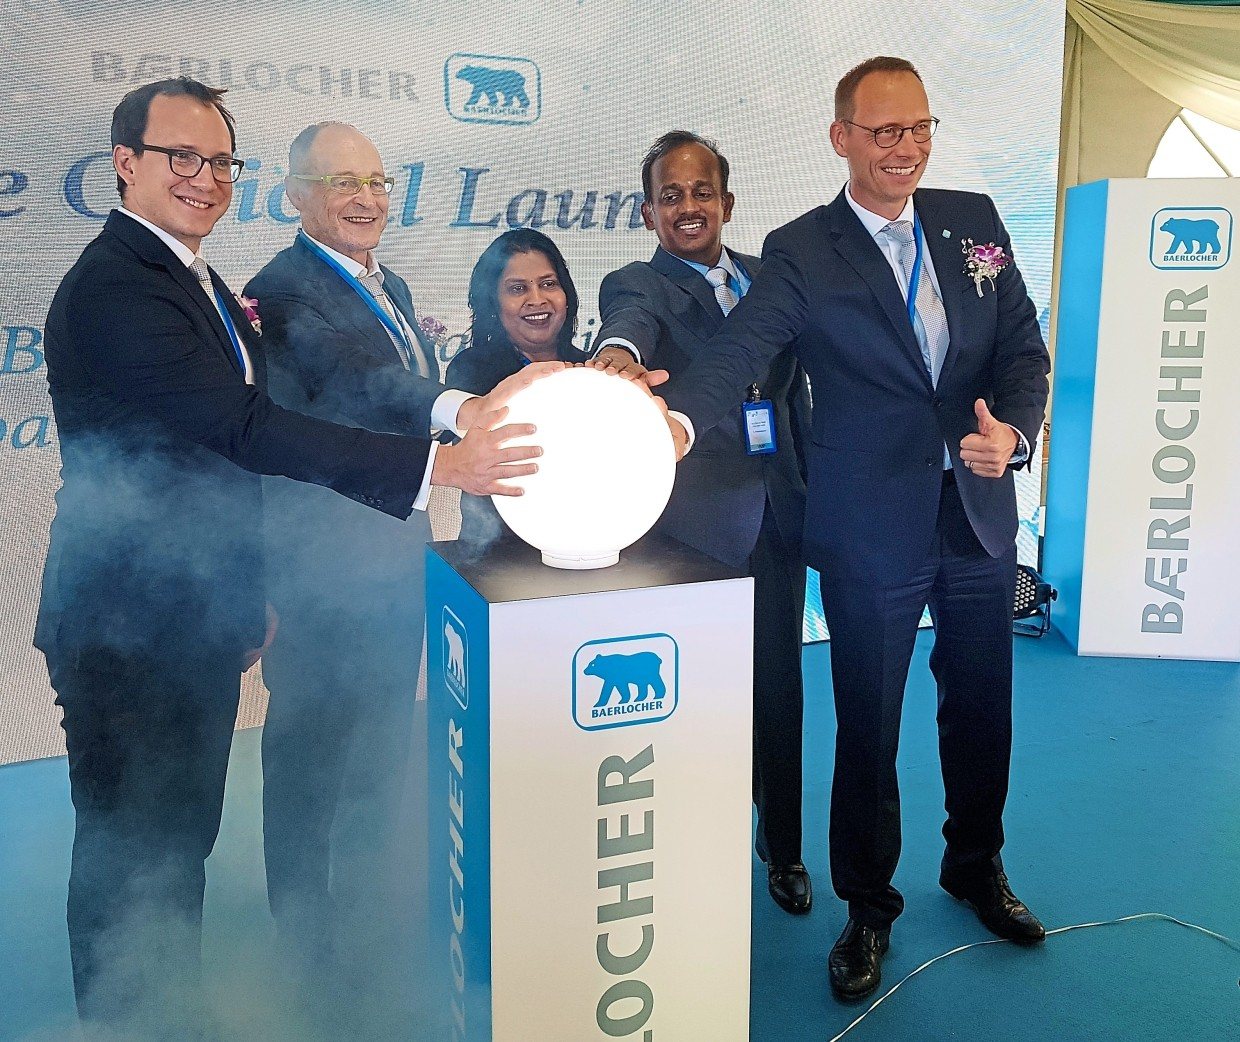 Opening ceremony: Talagavathi (middle) placing her hand on a crystal ball to symbolically open the new production line, warehouse and office building at Baerlocher Malaysia. Joining her are (from left) majority shareholder of Baerlocher Group of Companies Dr Tobias Rosenthal, advisory board chairman Dr Micheal Rosenthal, Sethu and Schulle